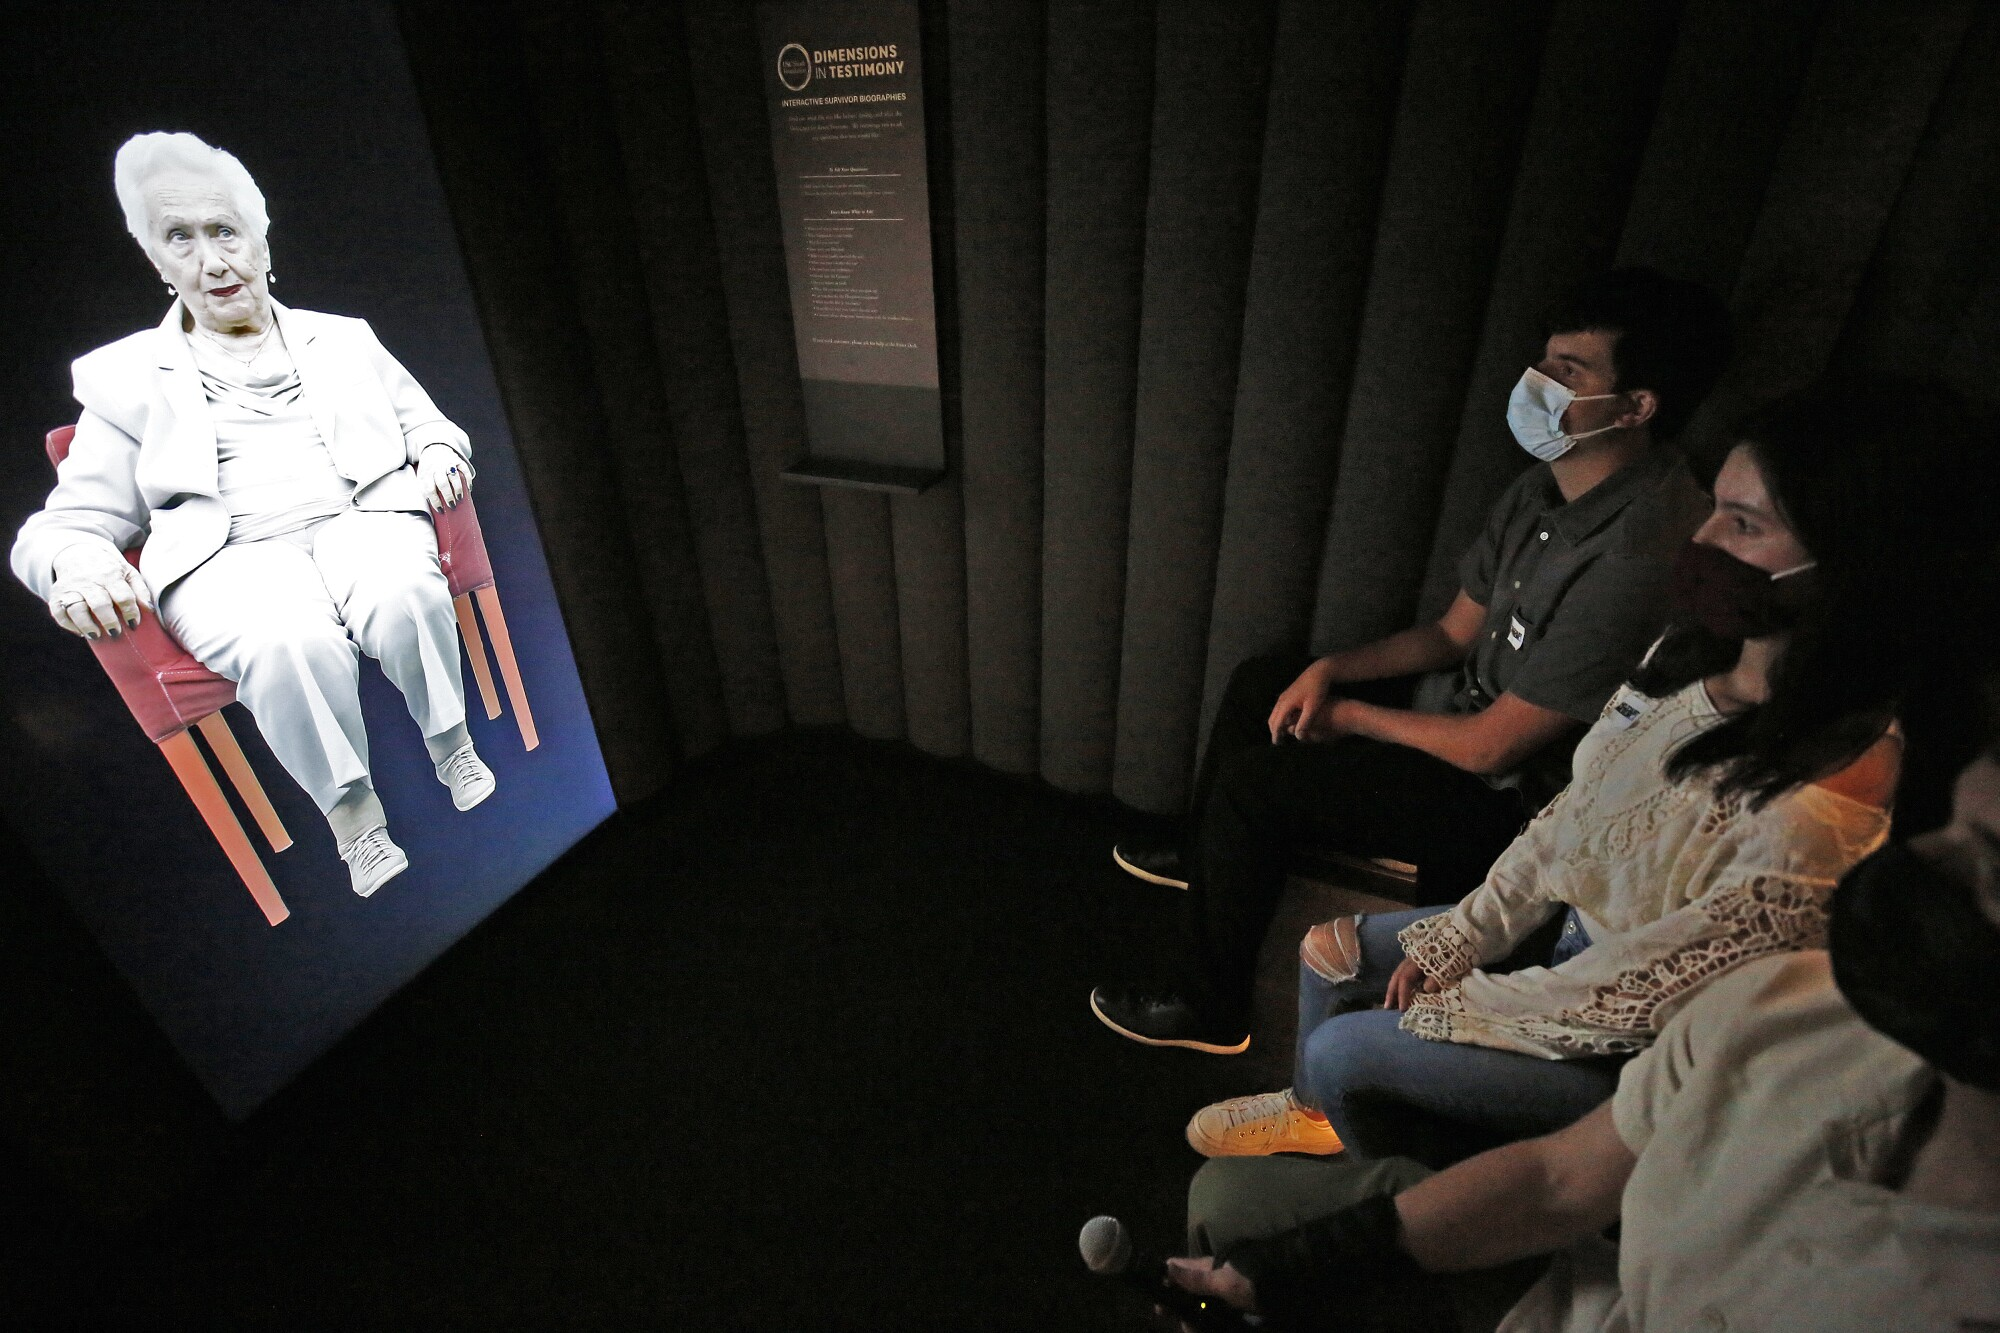 Students virtually interact with a holographic image of 97-year-old Holocaust survivor Renee Firestone.